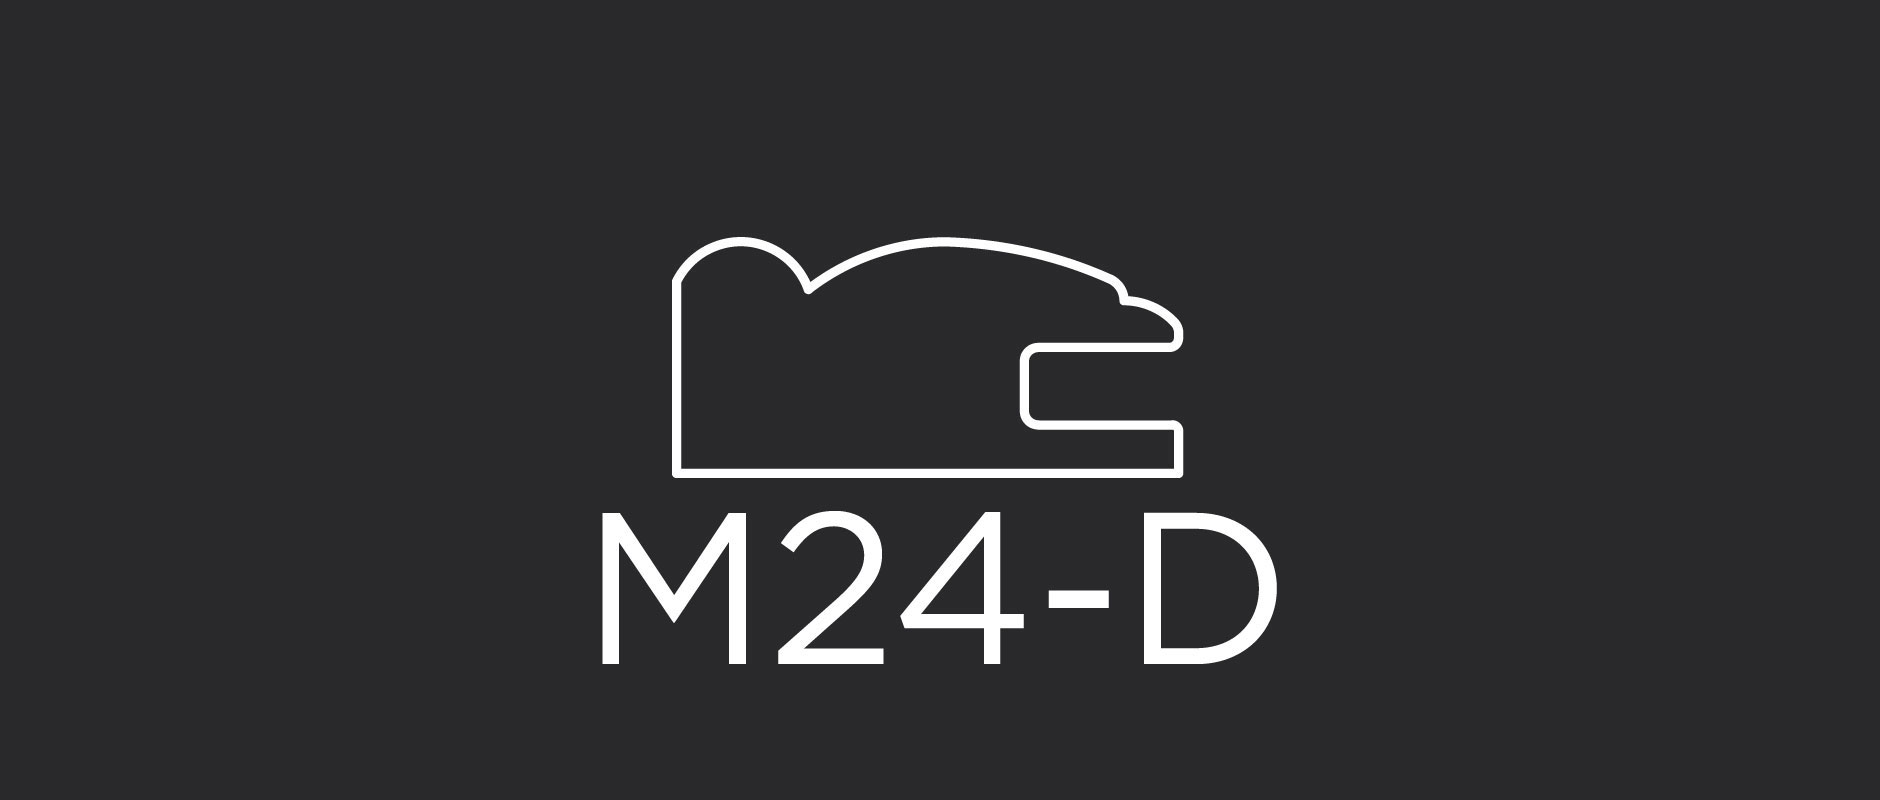 M24-D mitered reduced size frame for use in 5-piece drawer fronts